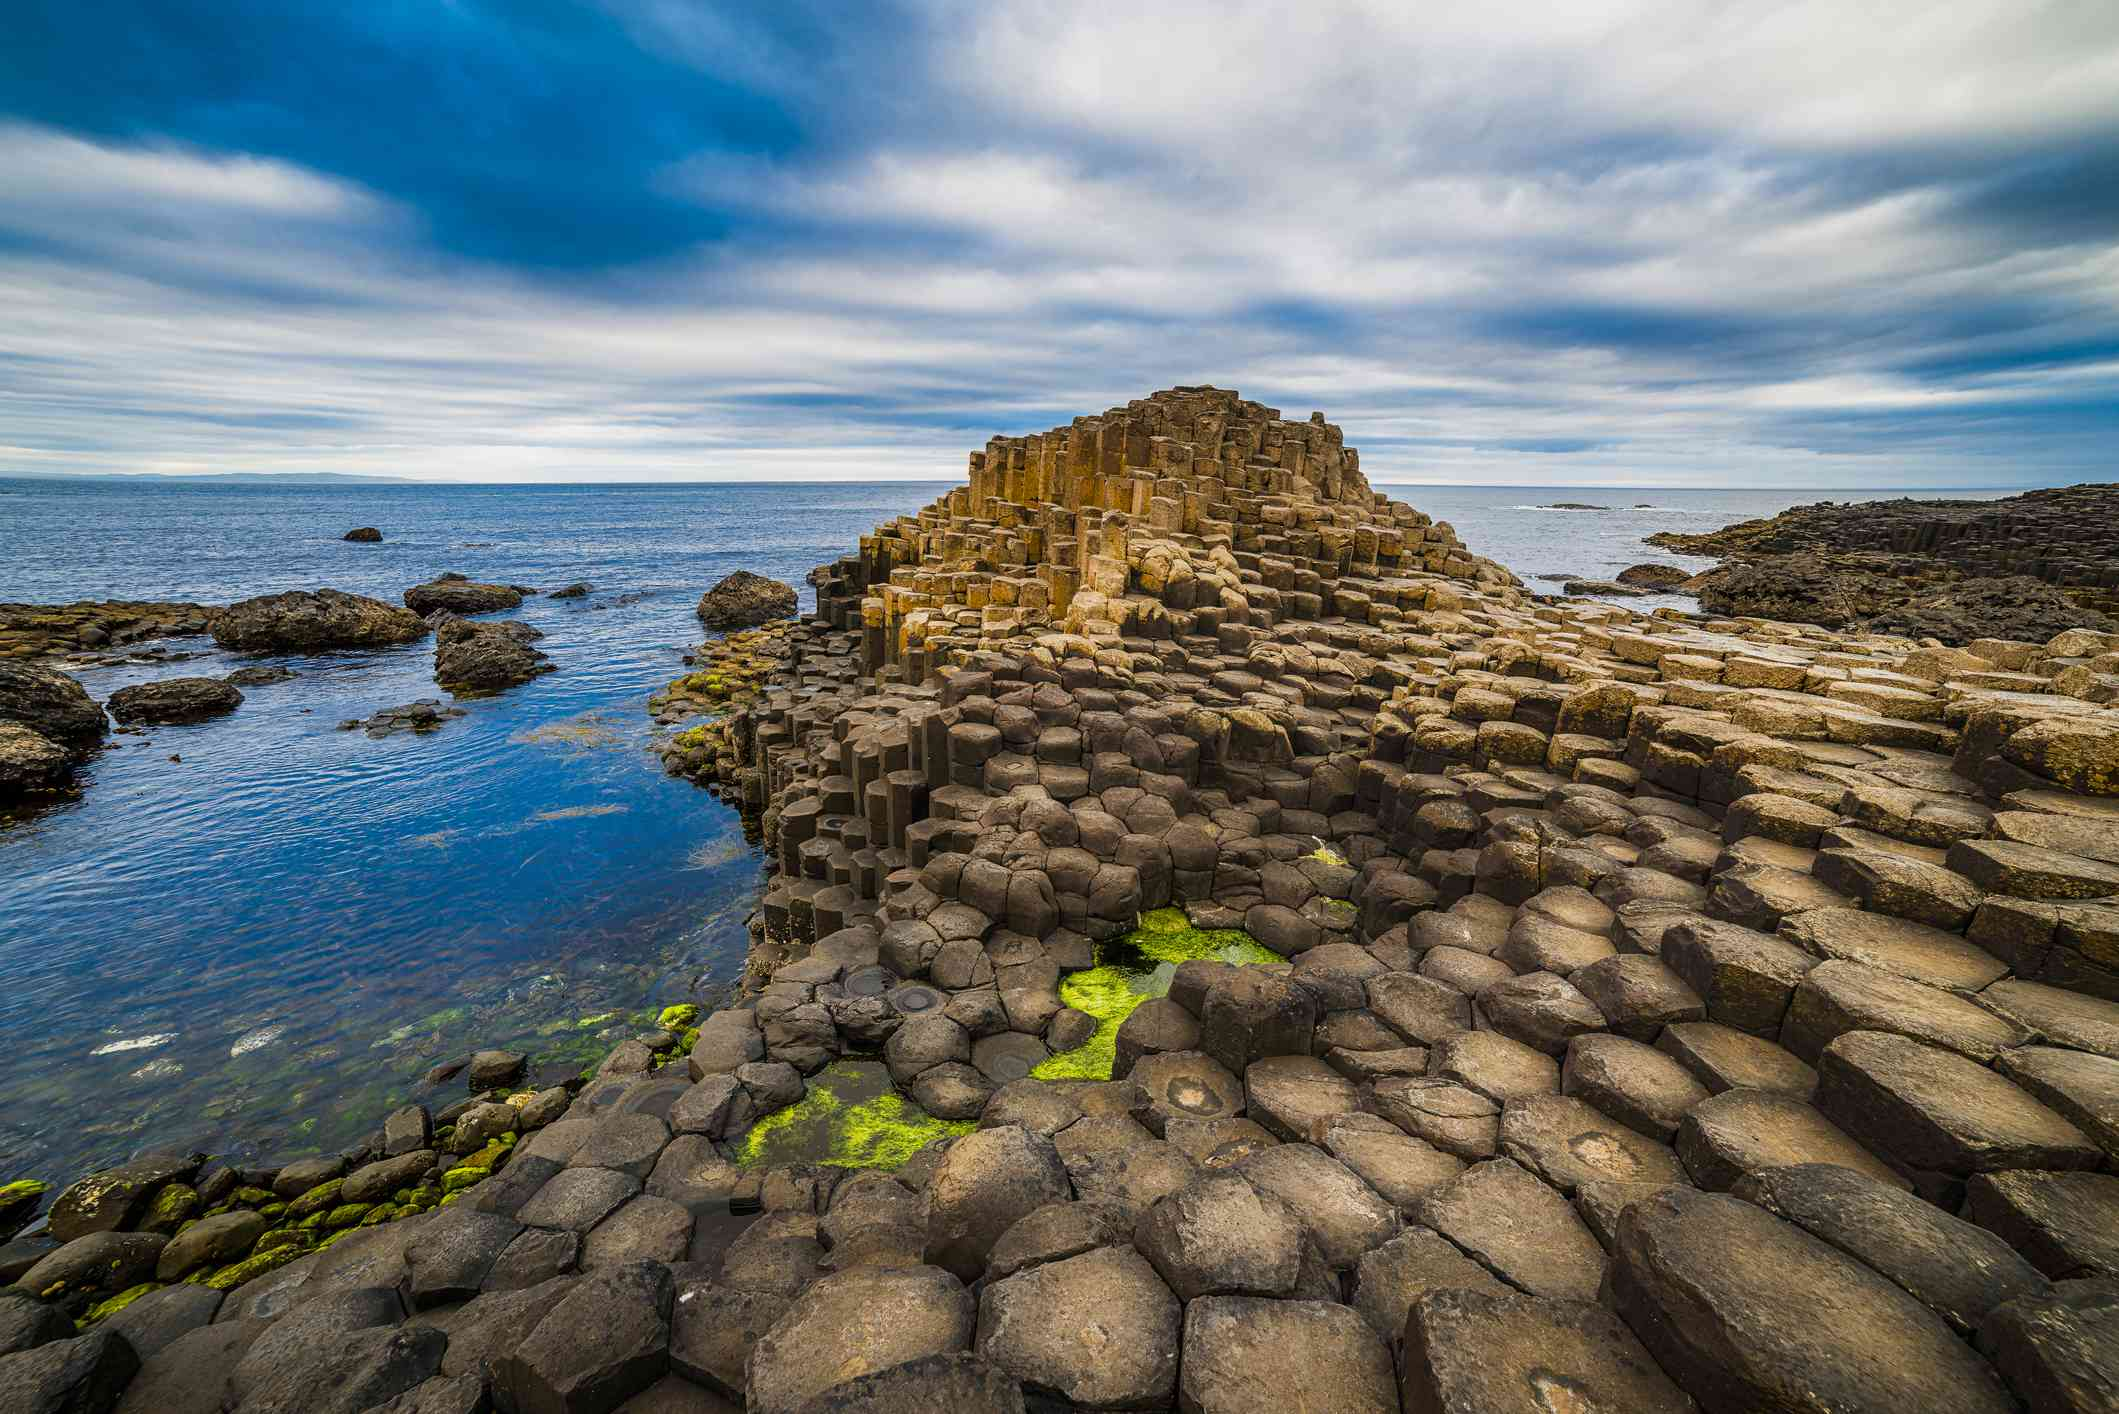 Bushmills, Northern Ireland - June 17, 2017: the Giant's Causeway is an area of about 40,000 interlocking basalt columns, a result of an ancient volcanic eruption. It was declared a World Heritage Site by UNESCO in 1986.